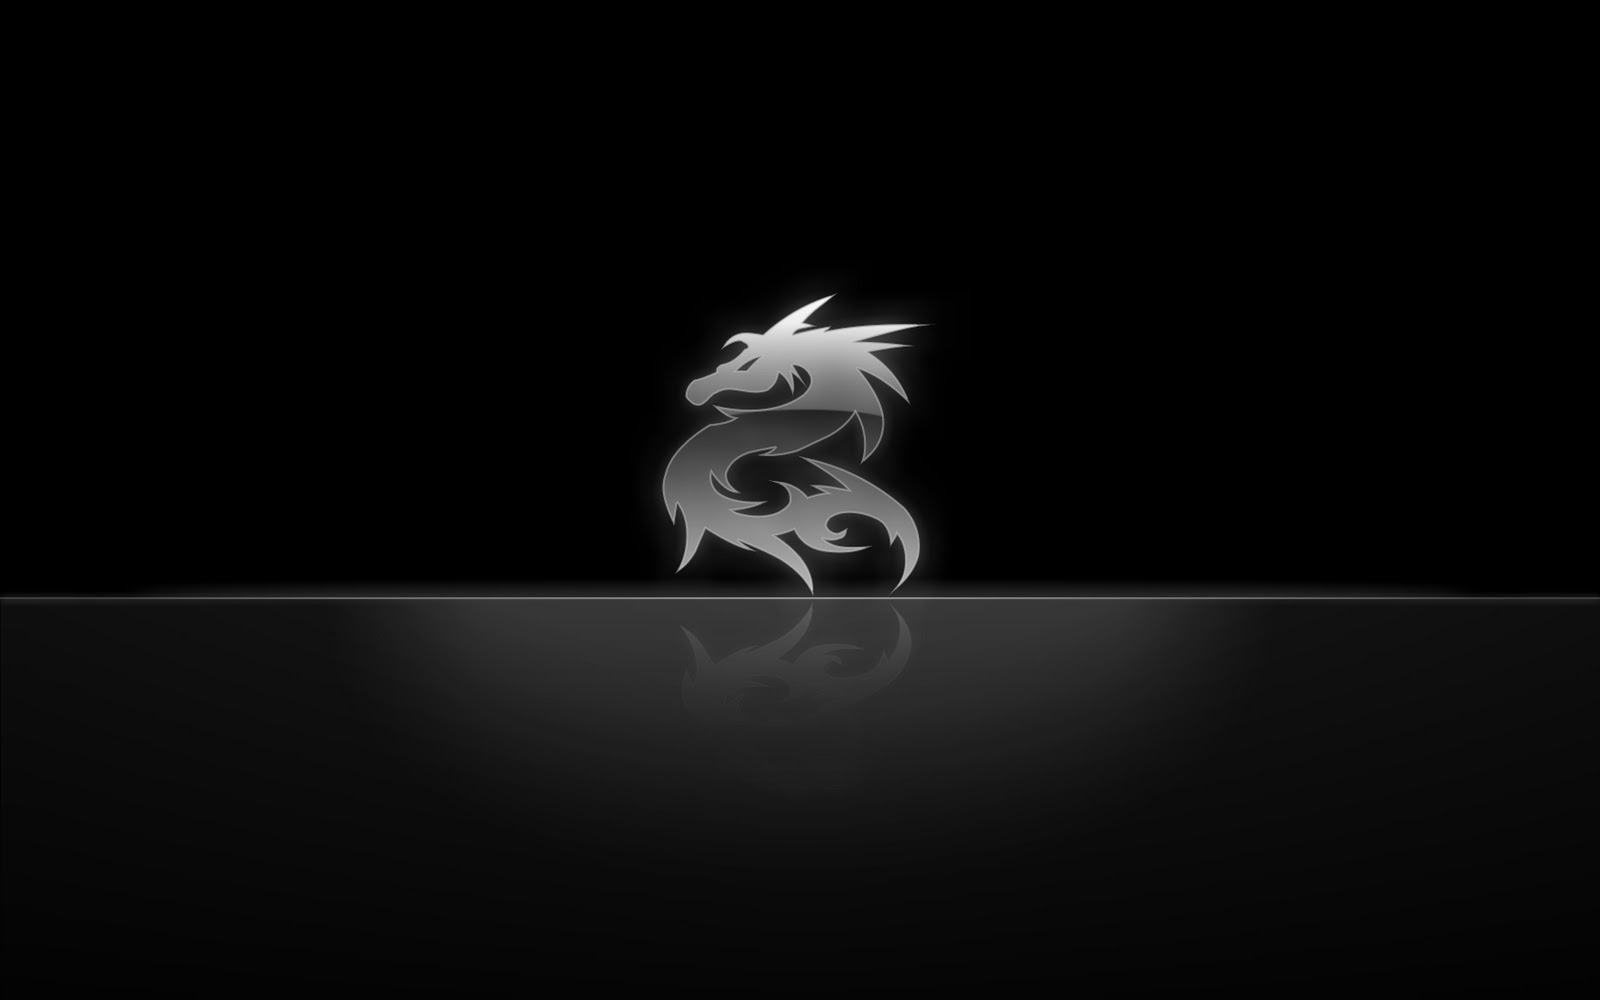 silver and black wallpaper